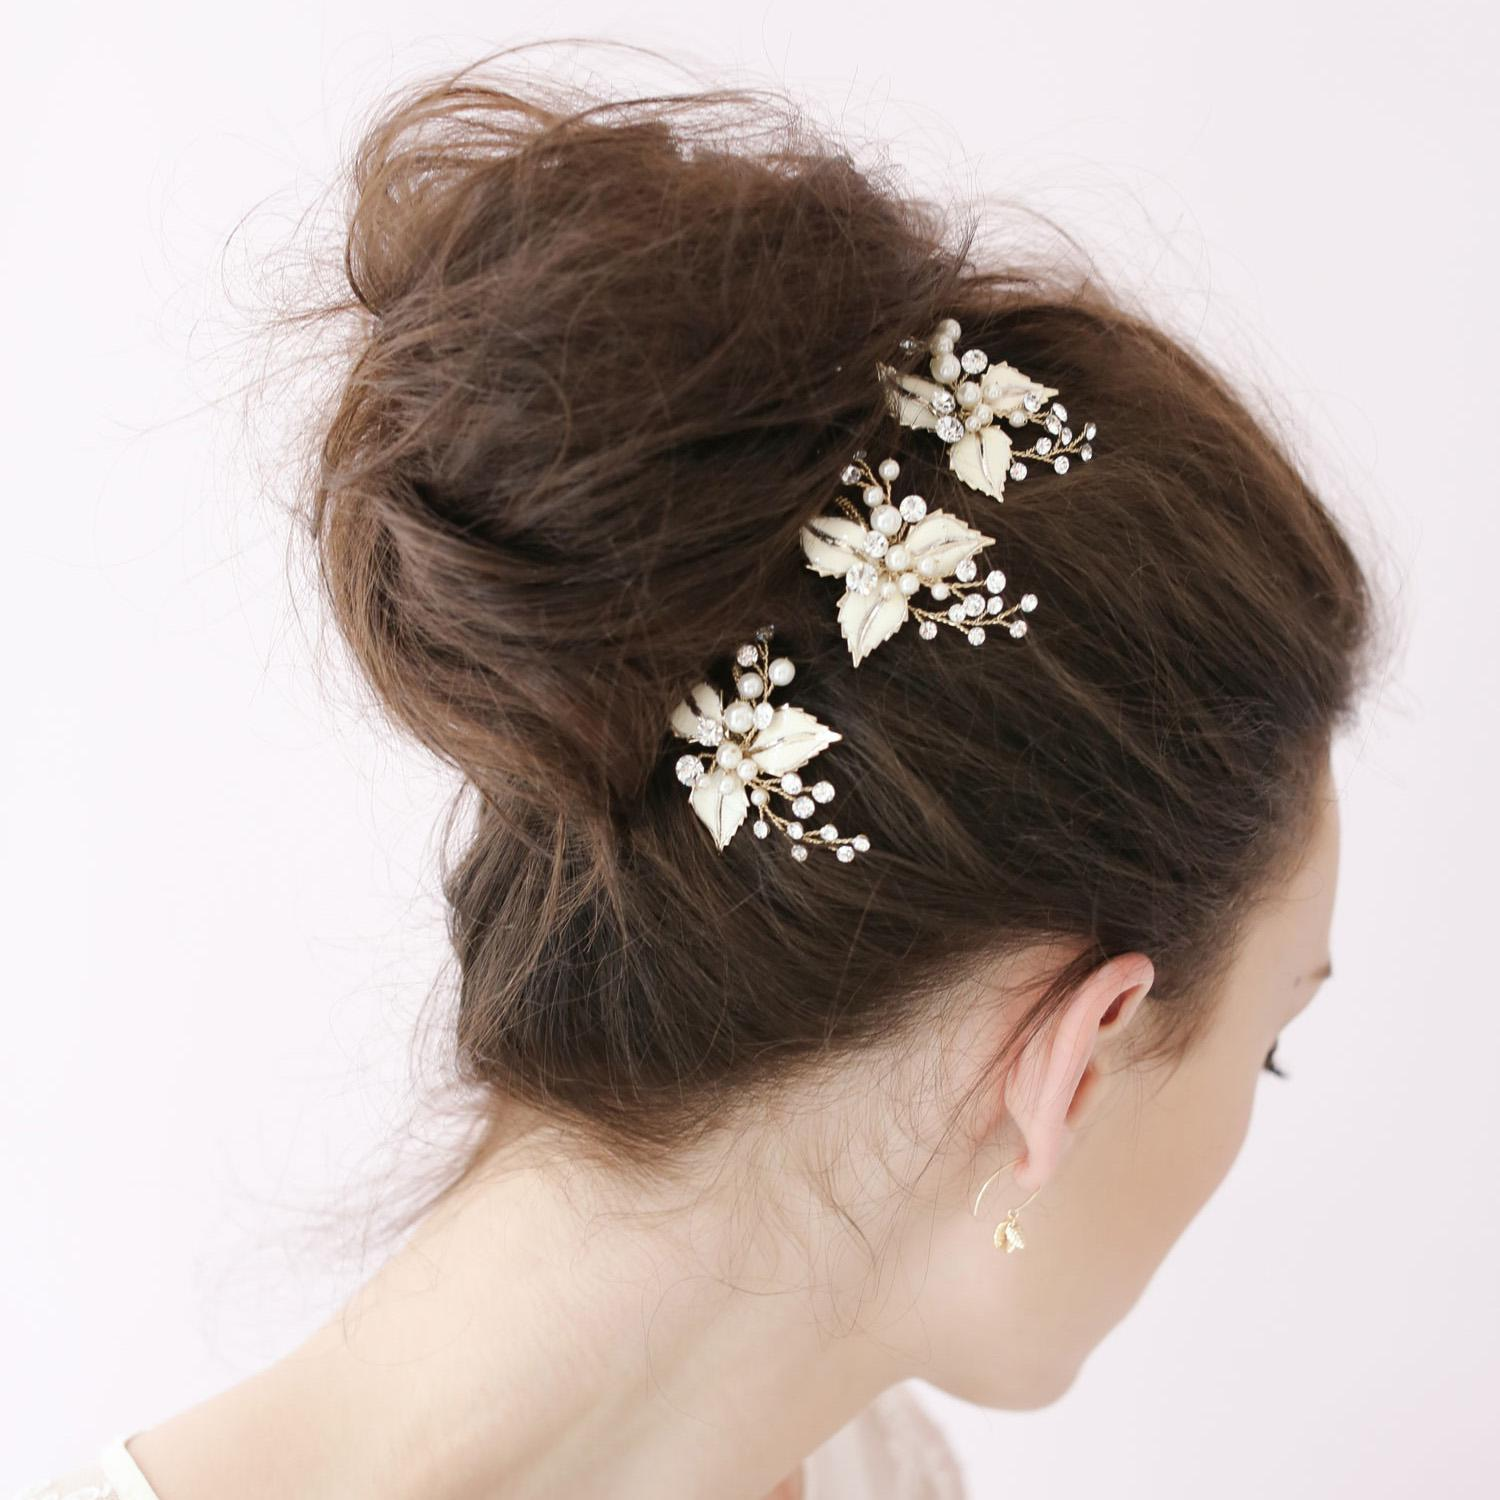 Hair accessories wedding cheap - Petite Enamel Leaf Tiaras Bobby Pin Bridal Hair Accessories Pins Wedding Hair Pins Pin Up Hair Accessories For Wedding Brides Girls Hair Pins Wedding Tiaras